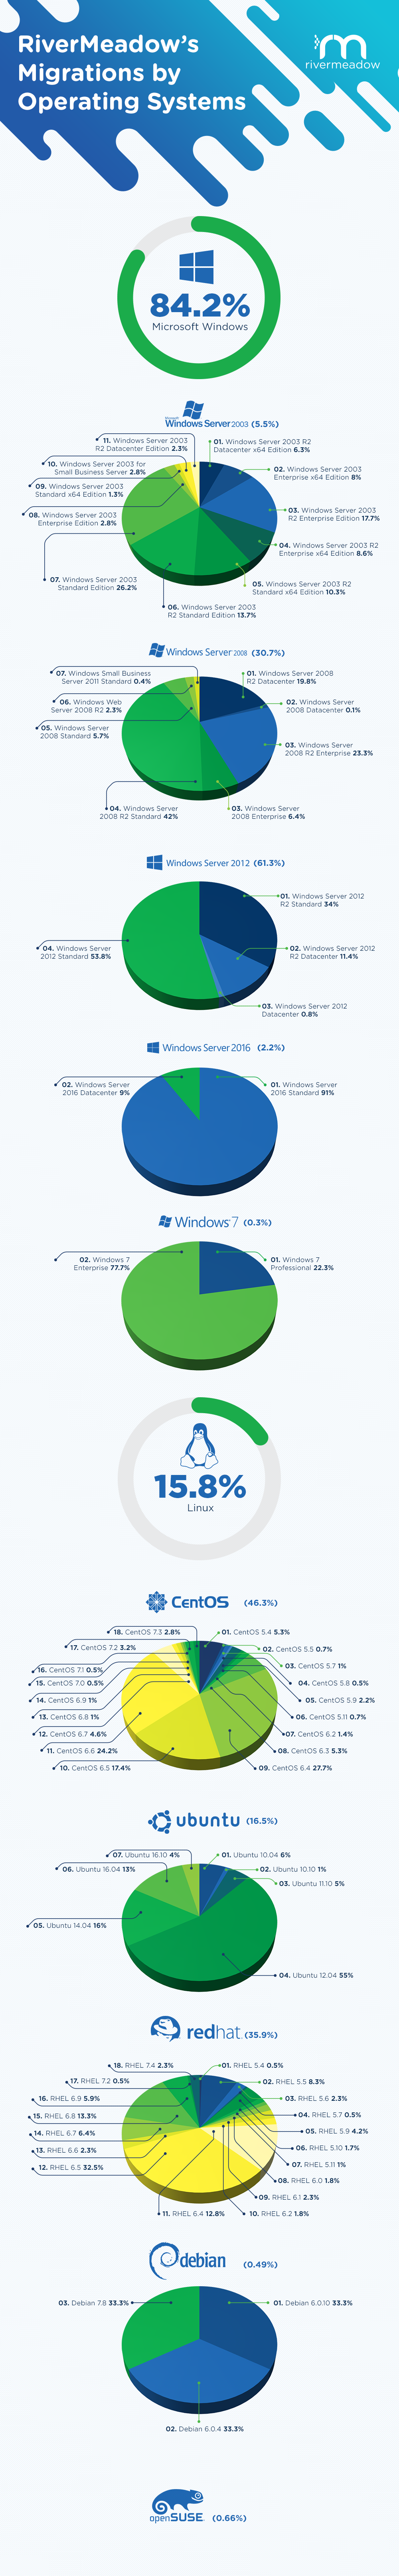 Infographic | RiverMeadow Cloud Migration Services by